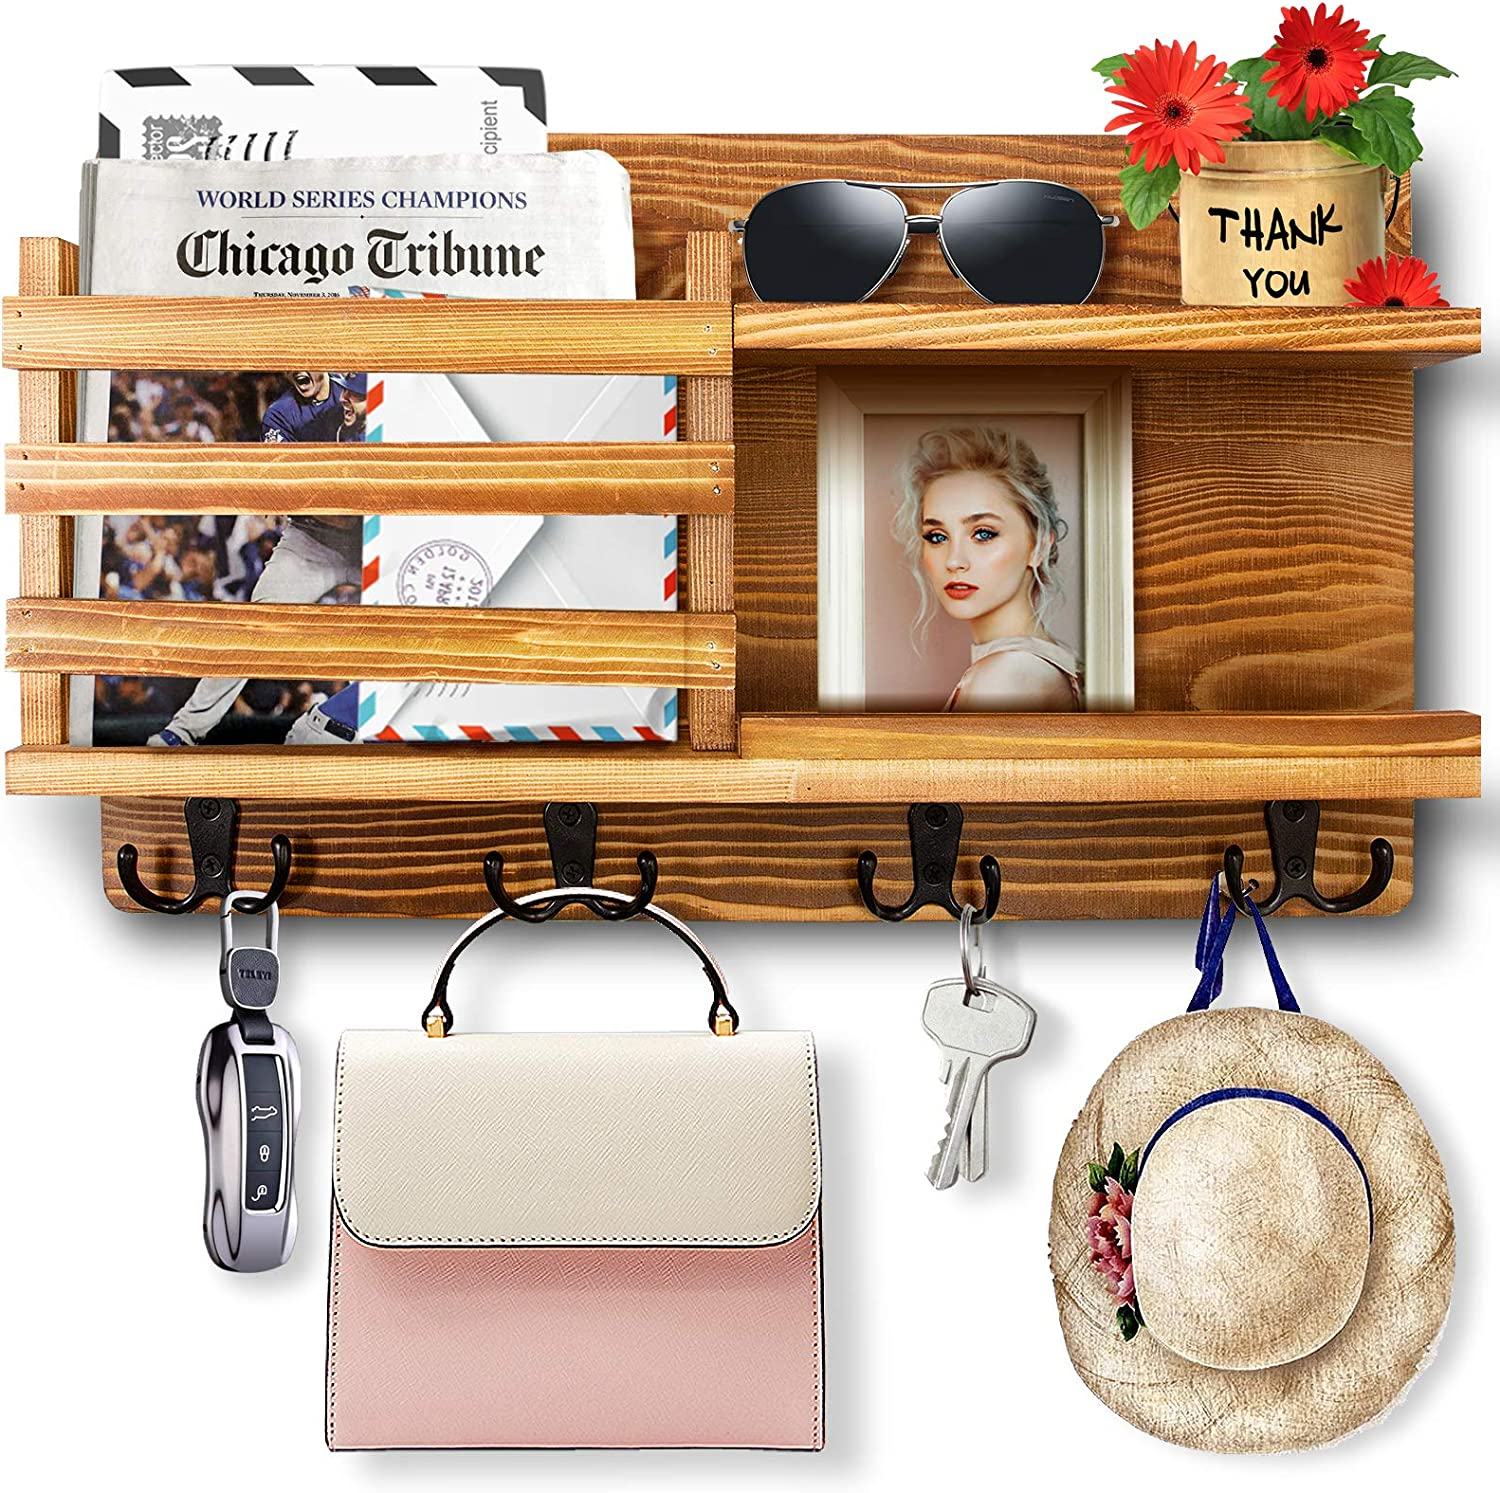 Storage Living Room Office Brobantle Wall Mounted Mail Holder for Wall with Key Hooks Mail Organizer Wall Mount Key Holder Key Hooks Decorative Wooden Key Shelf for Entryway Hallway Brown